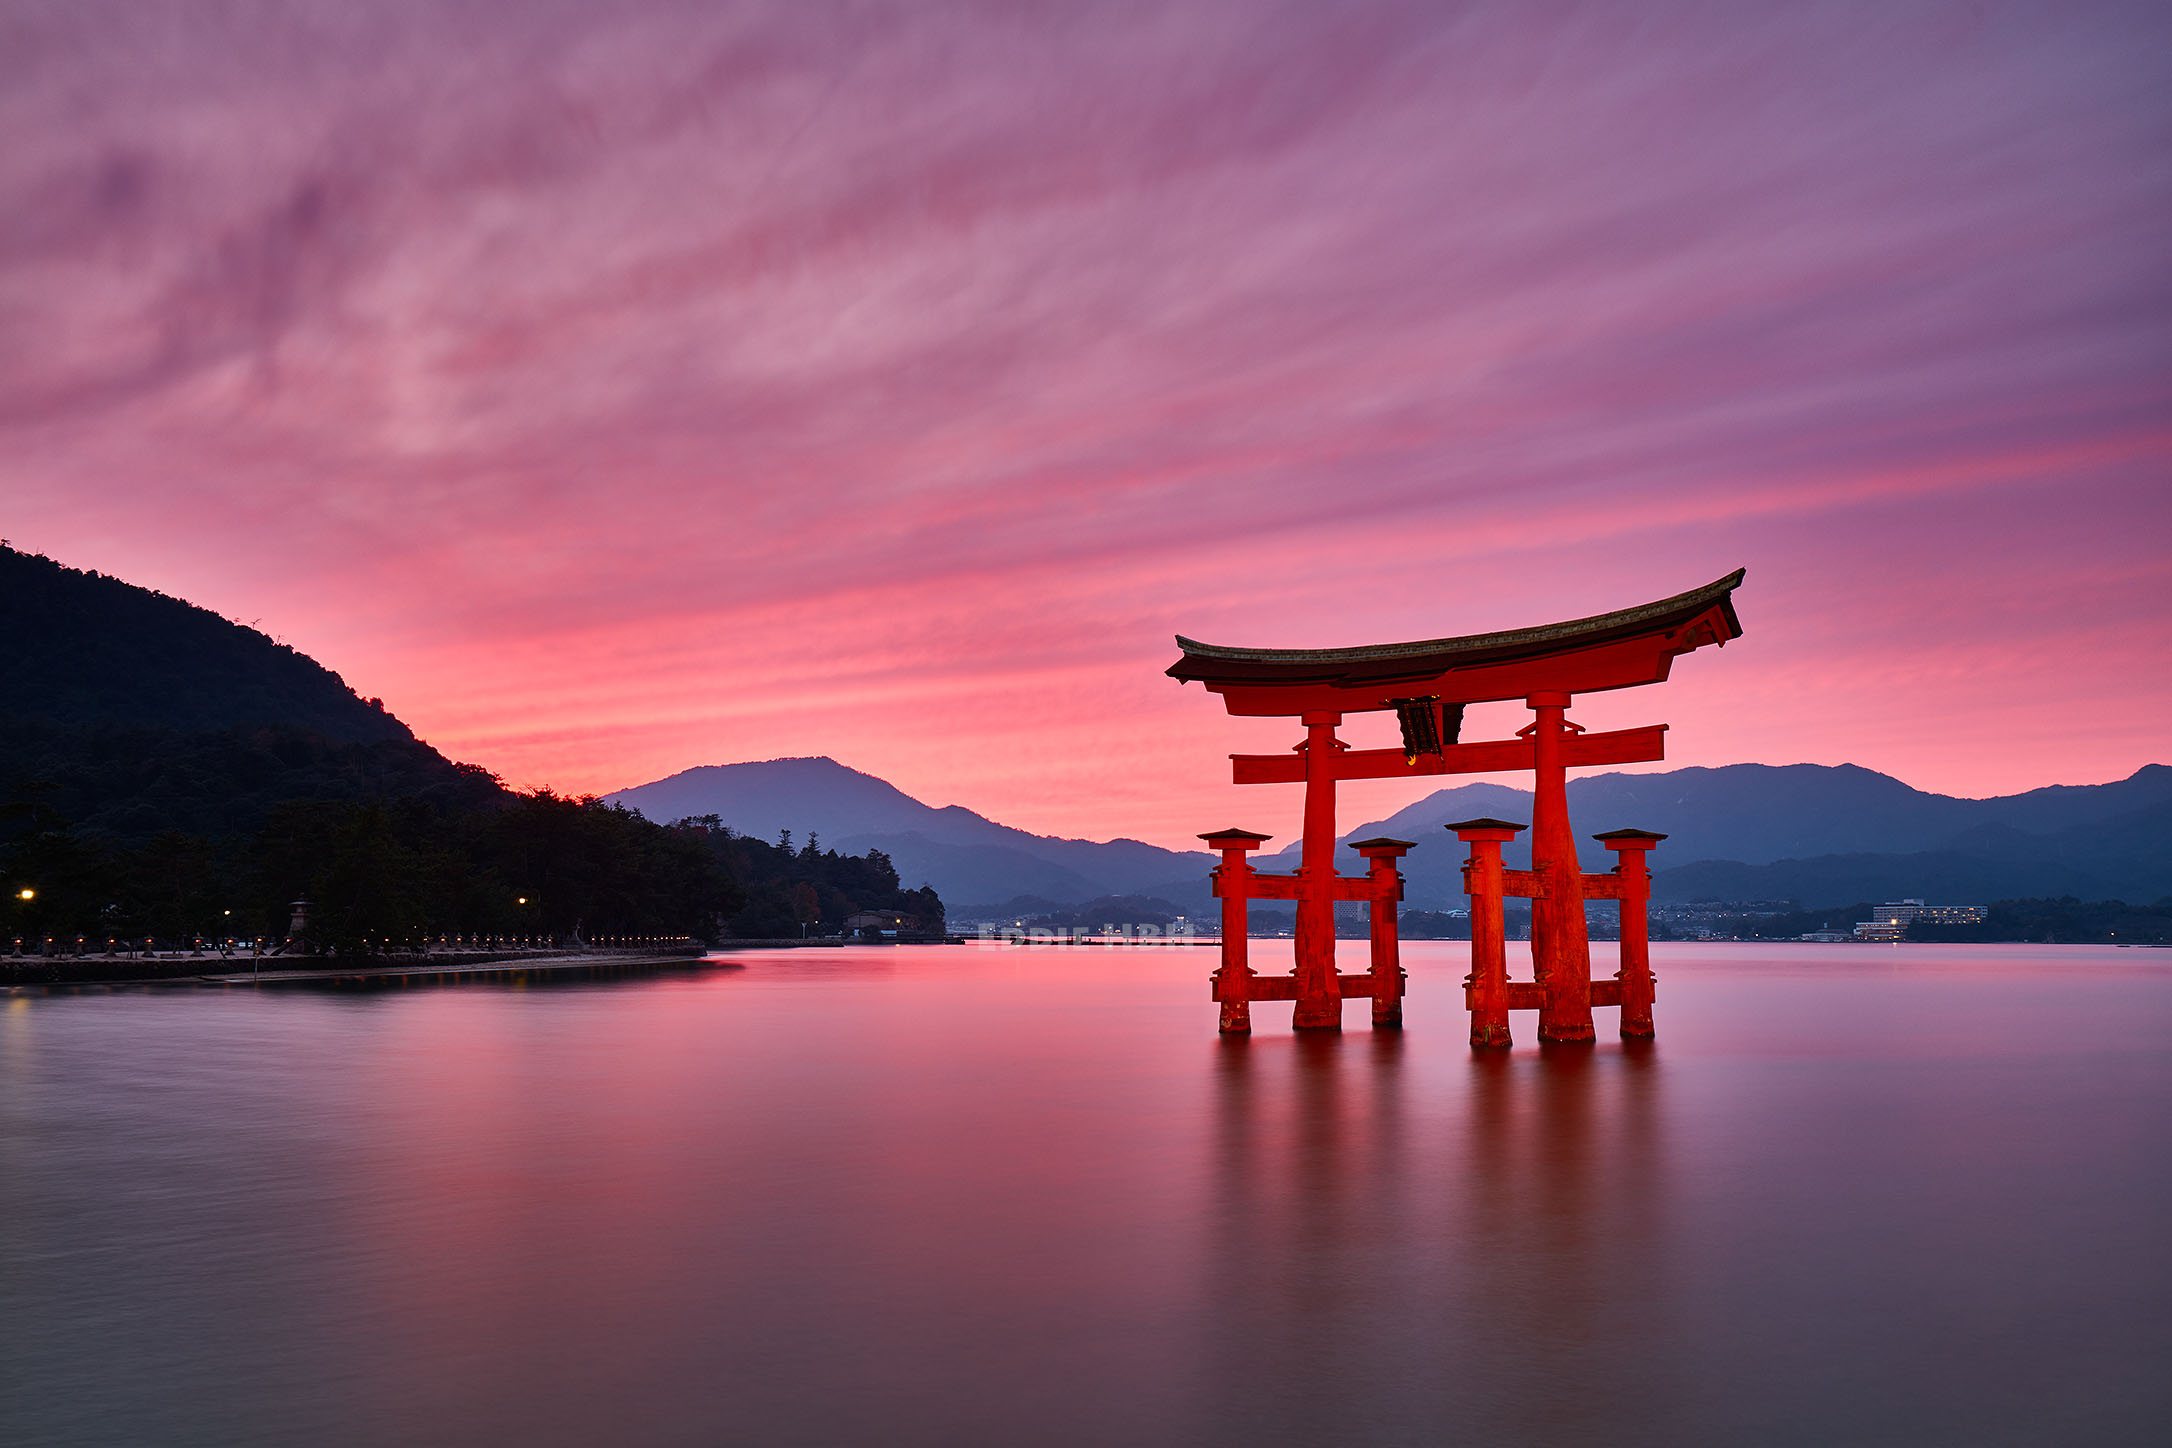 The Great Torii at Itsukushima Shrine